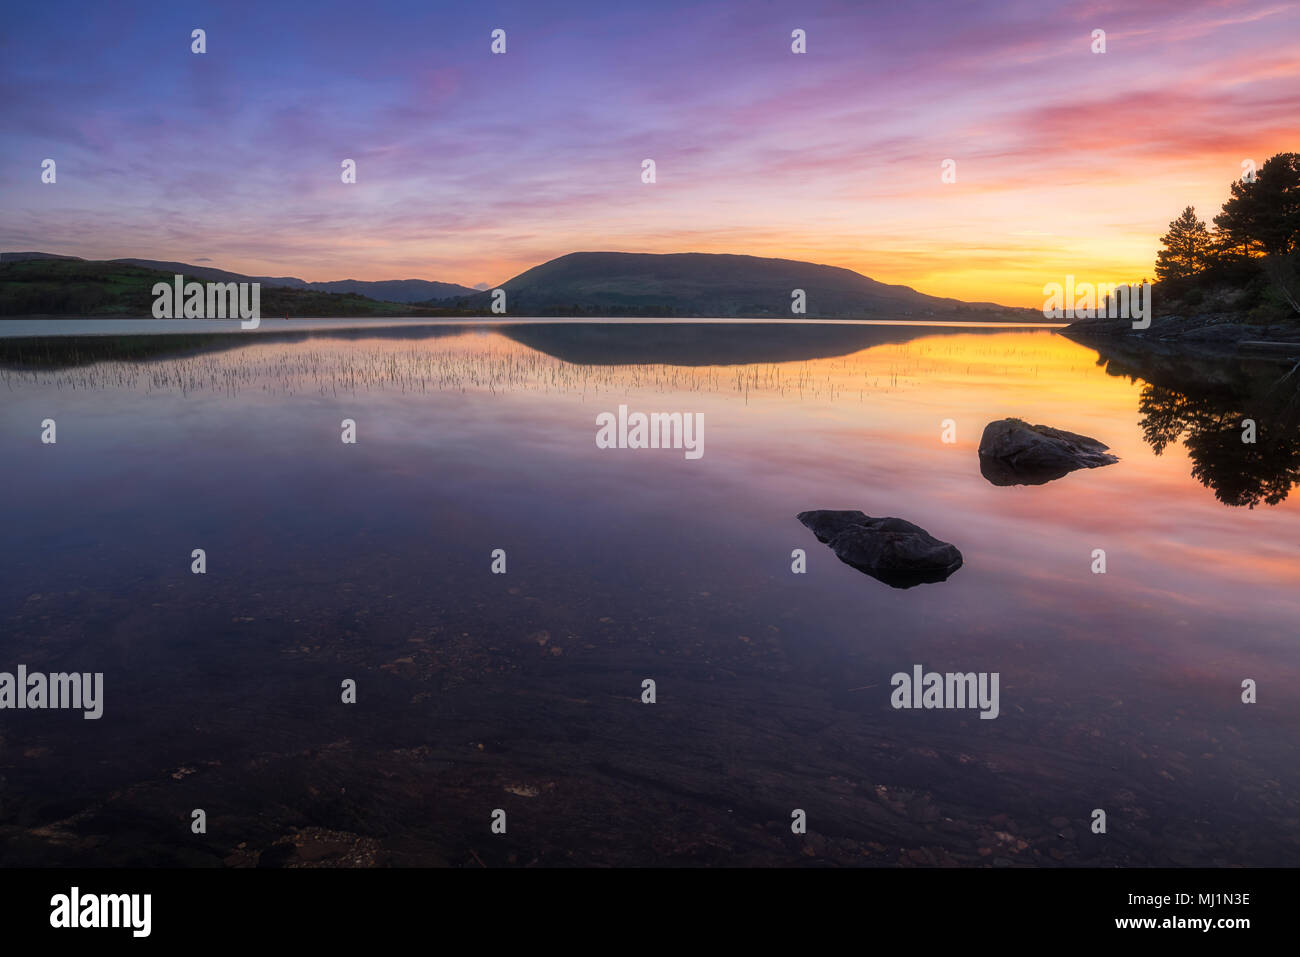 Lough Corrib in county Galway - Ireland Stock Photo